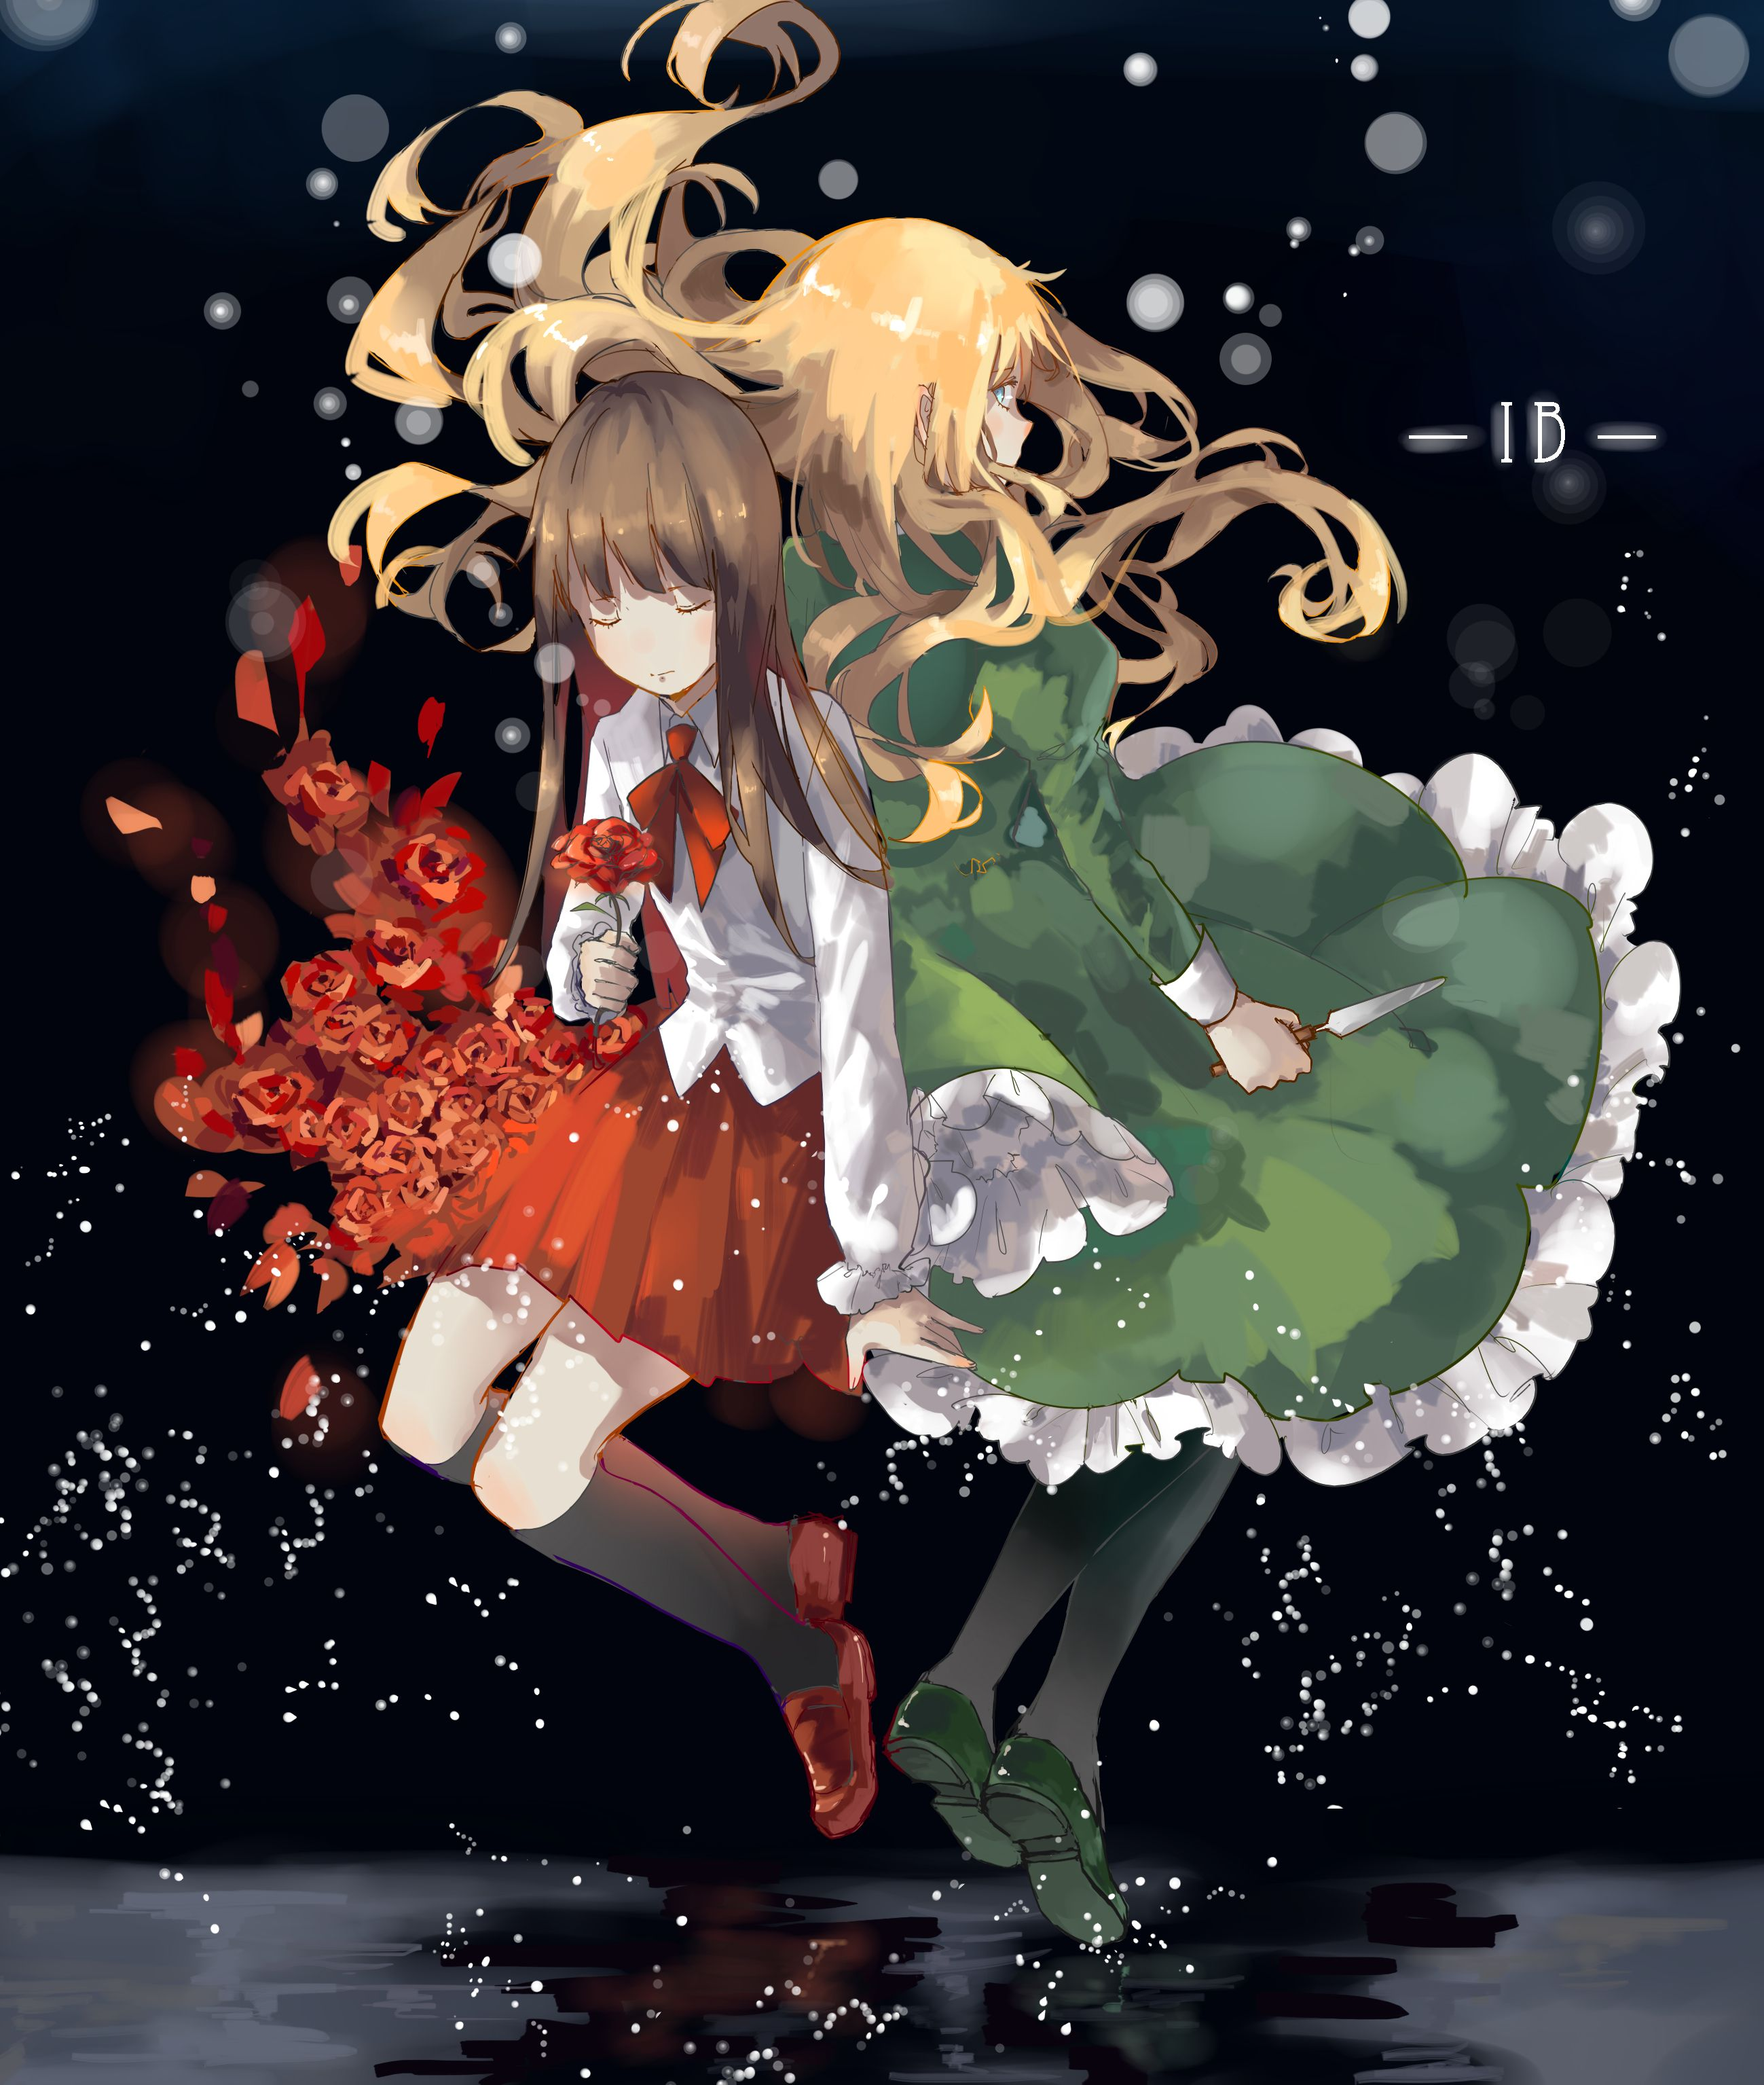 Mary and Ib Ib game, Rpg horror games, Rpg maker